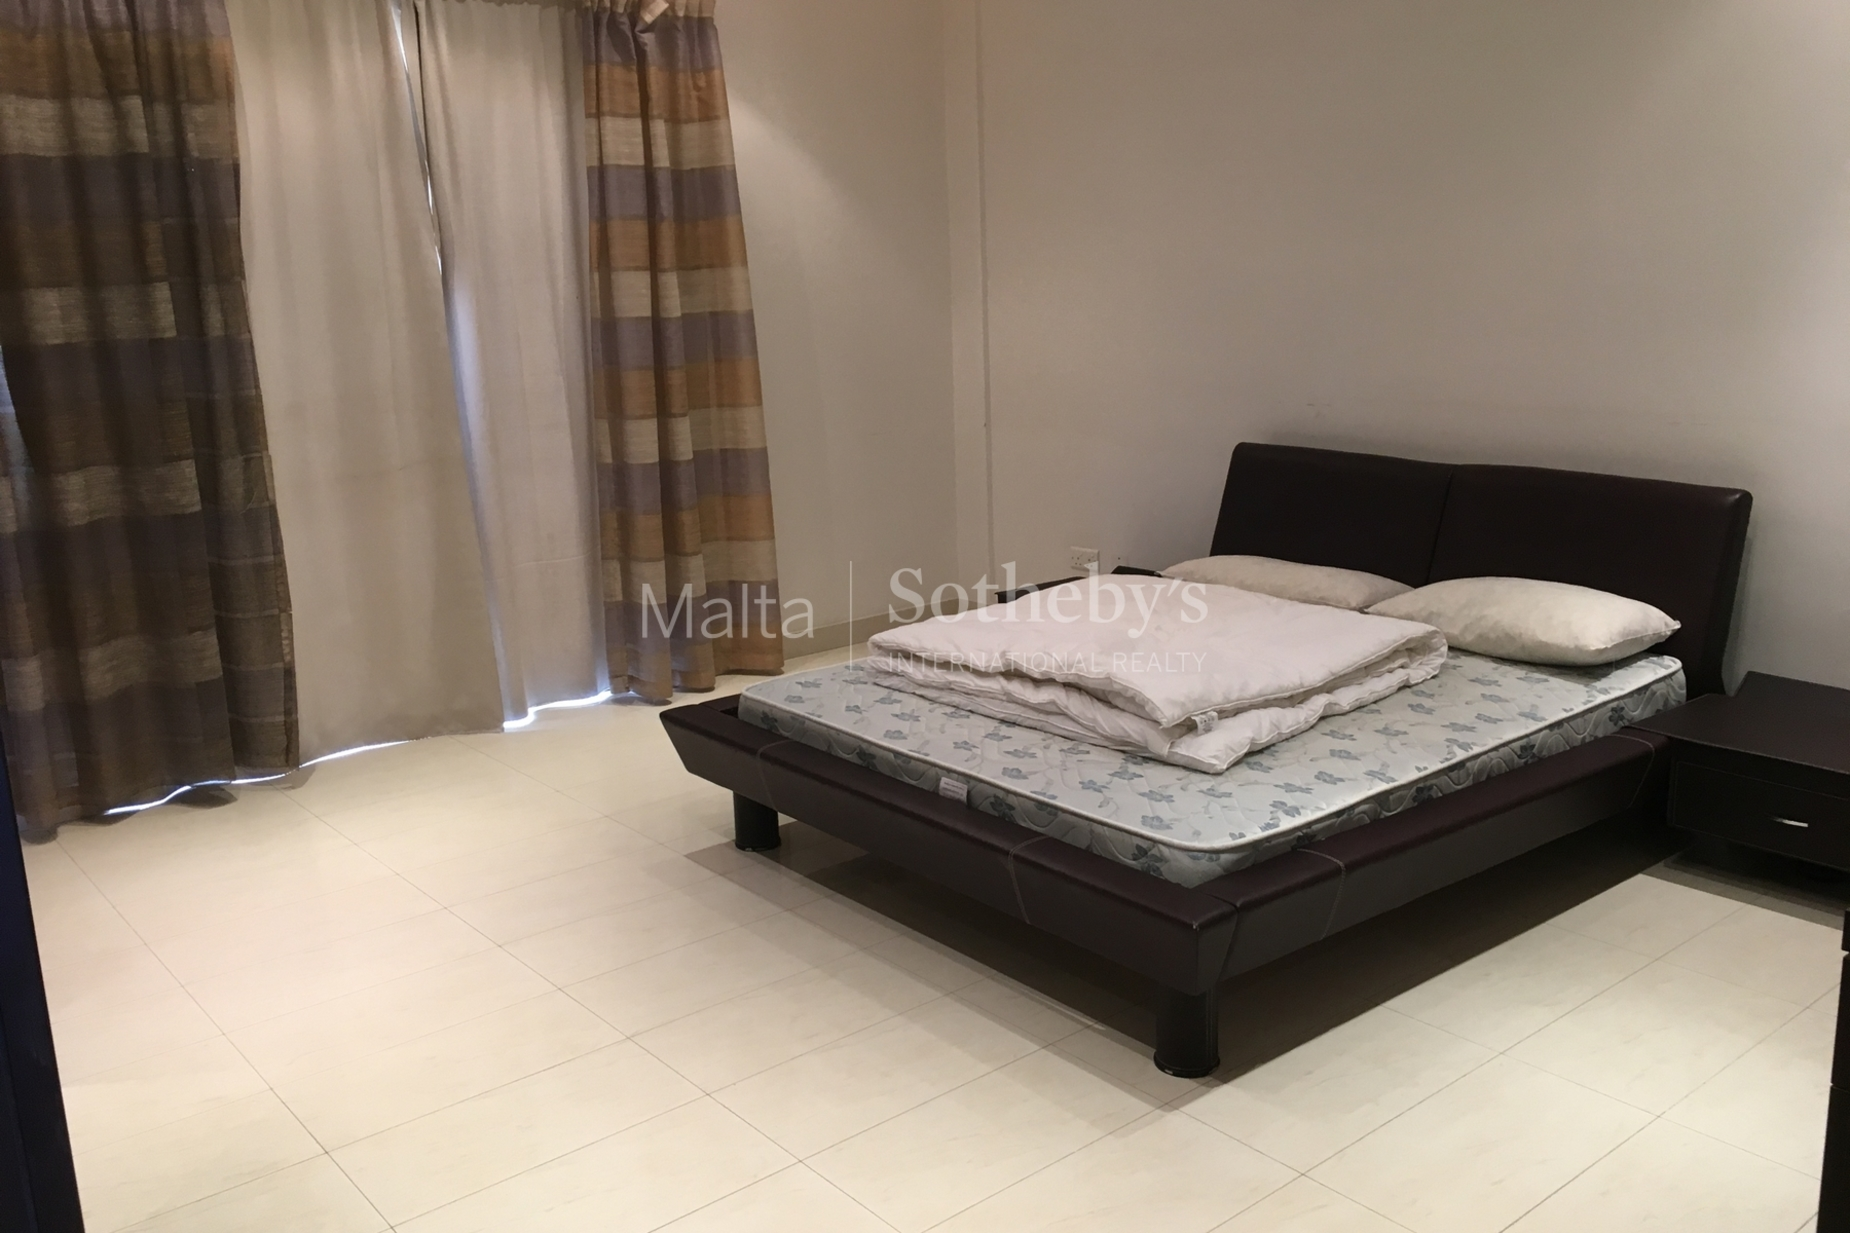 4 bed Apartment For Rent in Sliema, Sliema - thumb 6